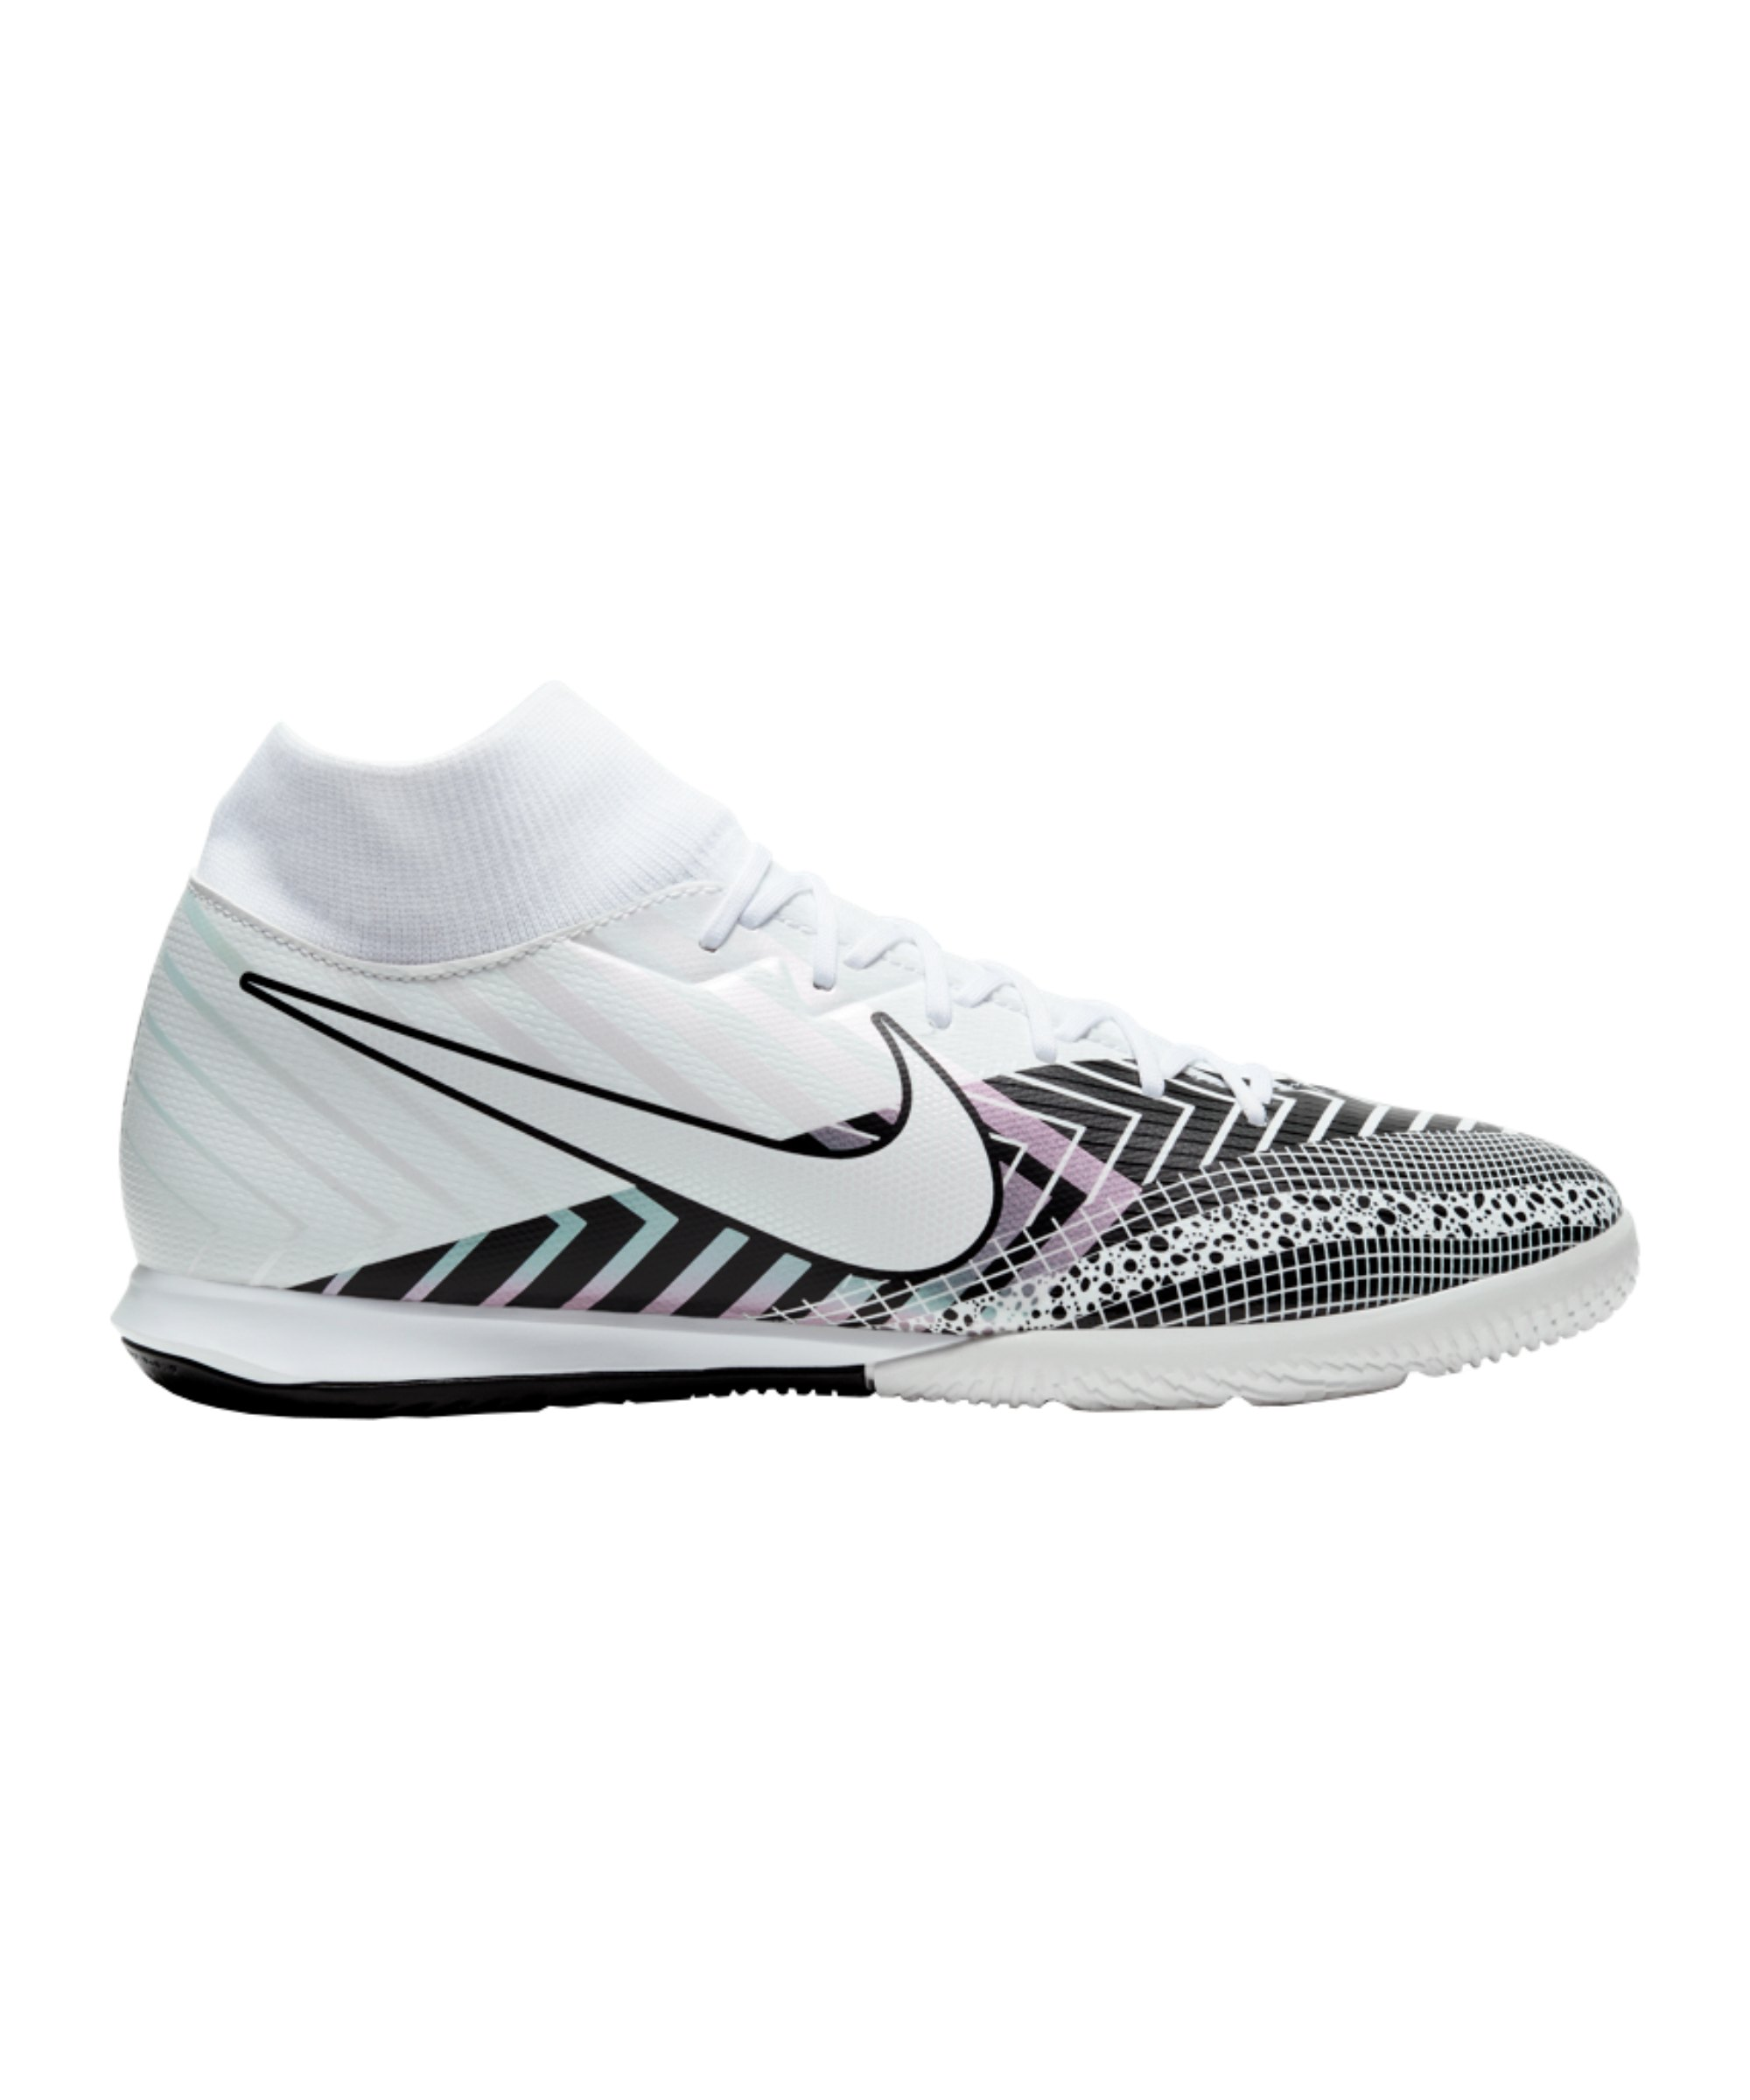 Nike Mercurial Superfly VII Dream Speed 3 Academy IC Weiss F110 - weiss